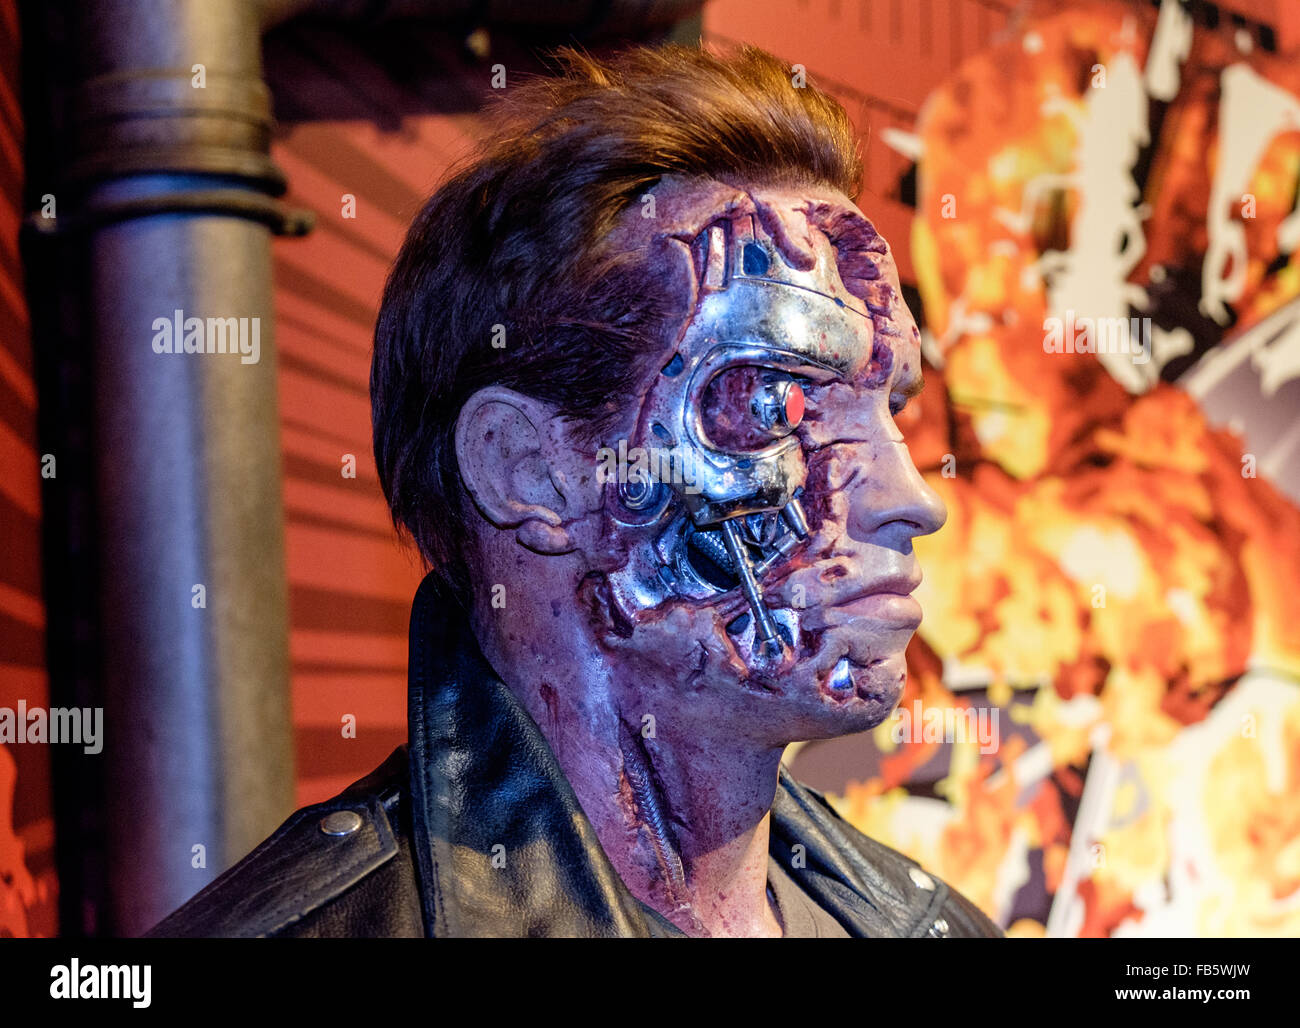 Arnold Schwarzenegger Terminator T-800 Model 101 waxwork at Madam Tussauds, London - Stock Image